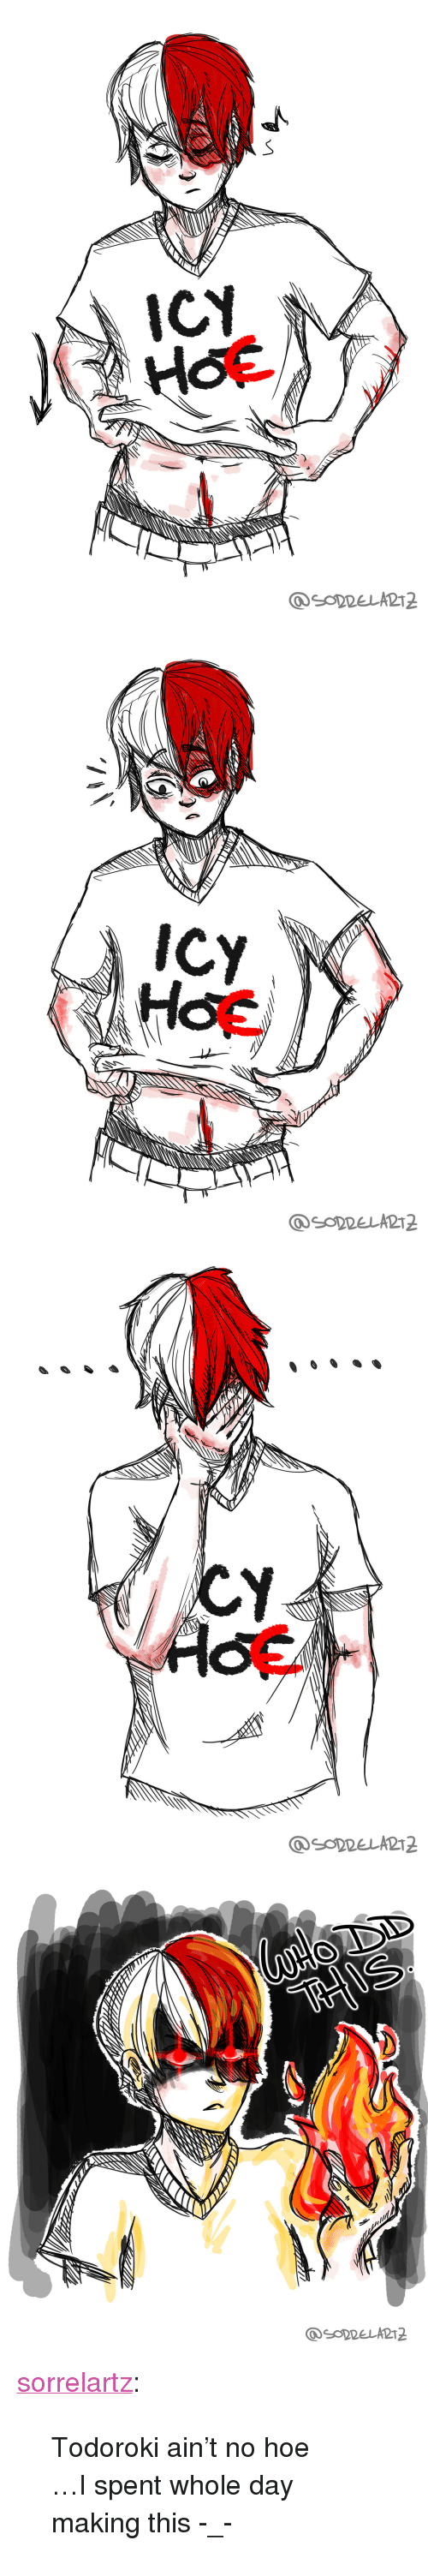 "Hoe, Tumblr, and Blog: ICY   Hot/   SODDELART2 <p><a href=""https://sorrelartz.tumblr.com/post/167340764306/todoroki-aint-no-hoe-i-spent-whole-day-making"" class=""tumblr_blog"">sorrelartz</a>:</p>  <blockquote><p>Todoroki ain't no hoe<br/></p><p>…I spent whole day making this -_- <br/></p></blockquote>"